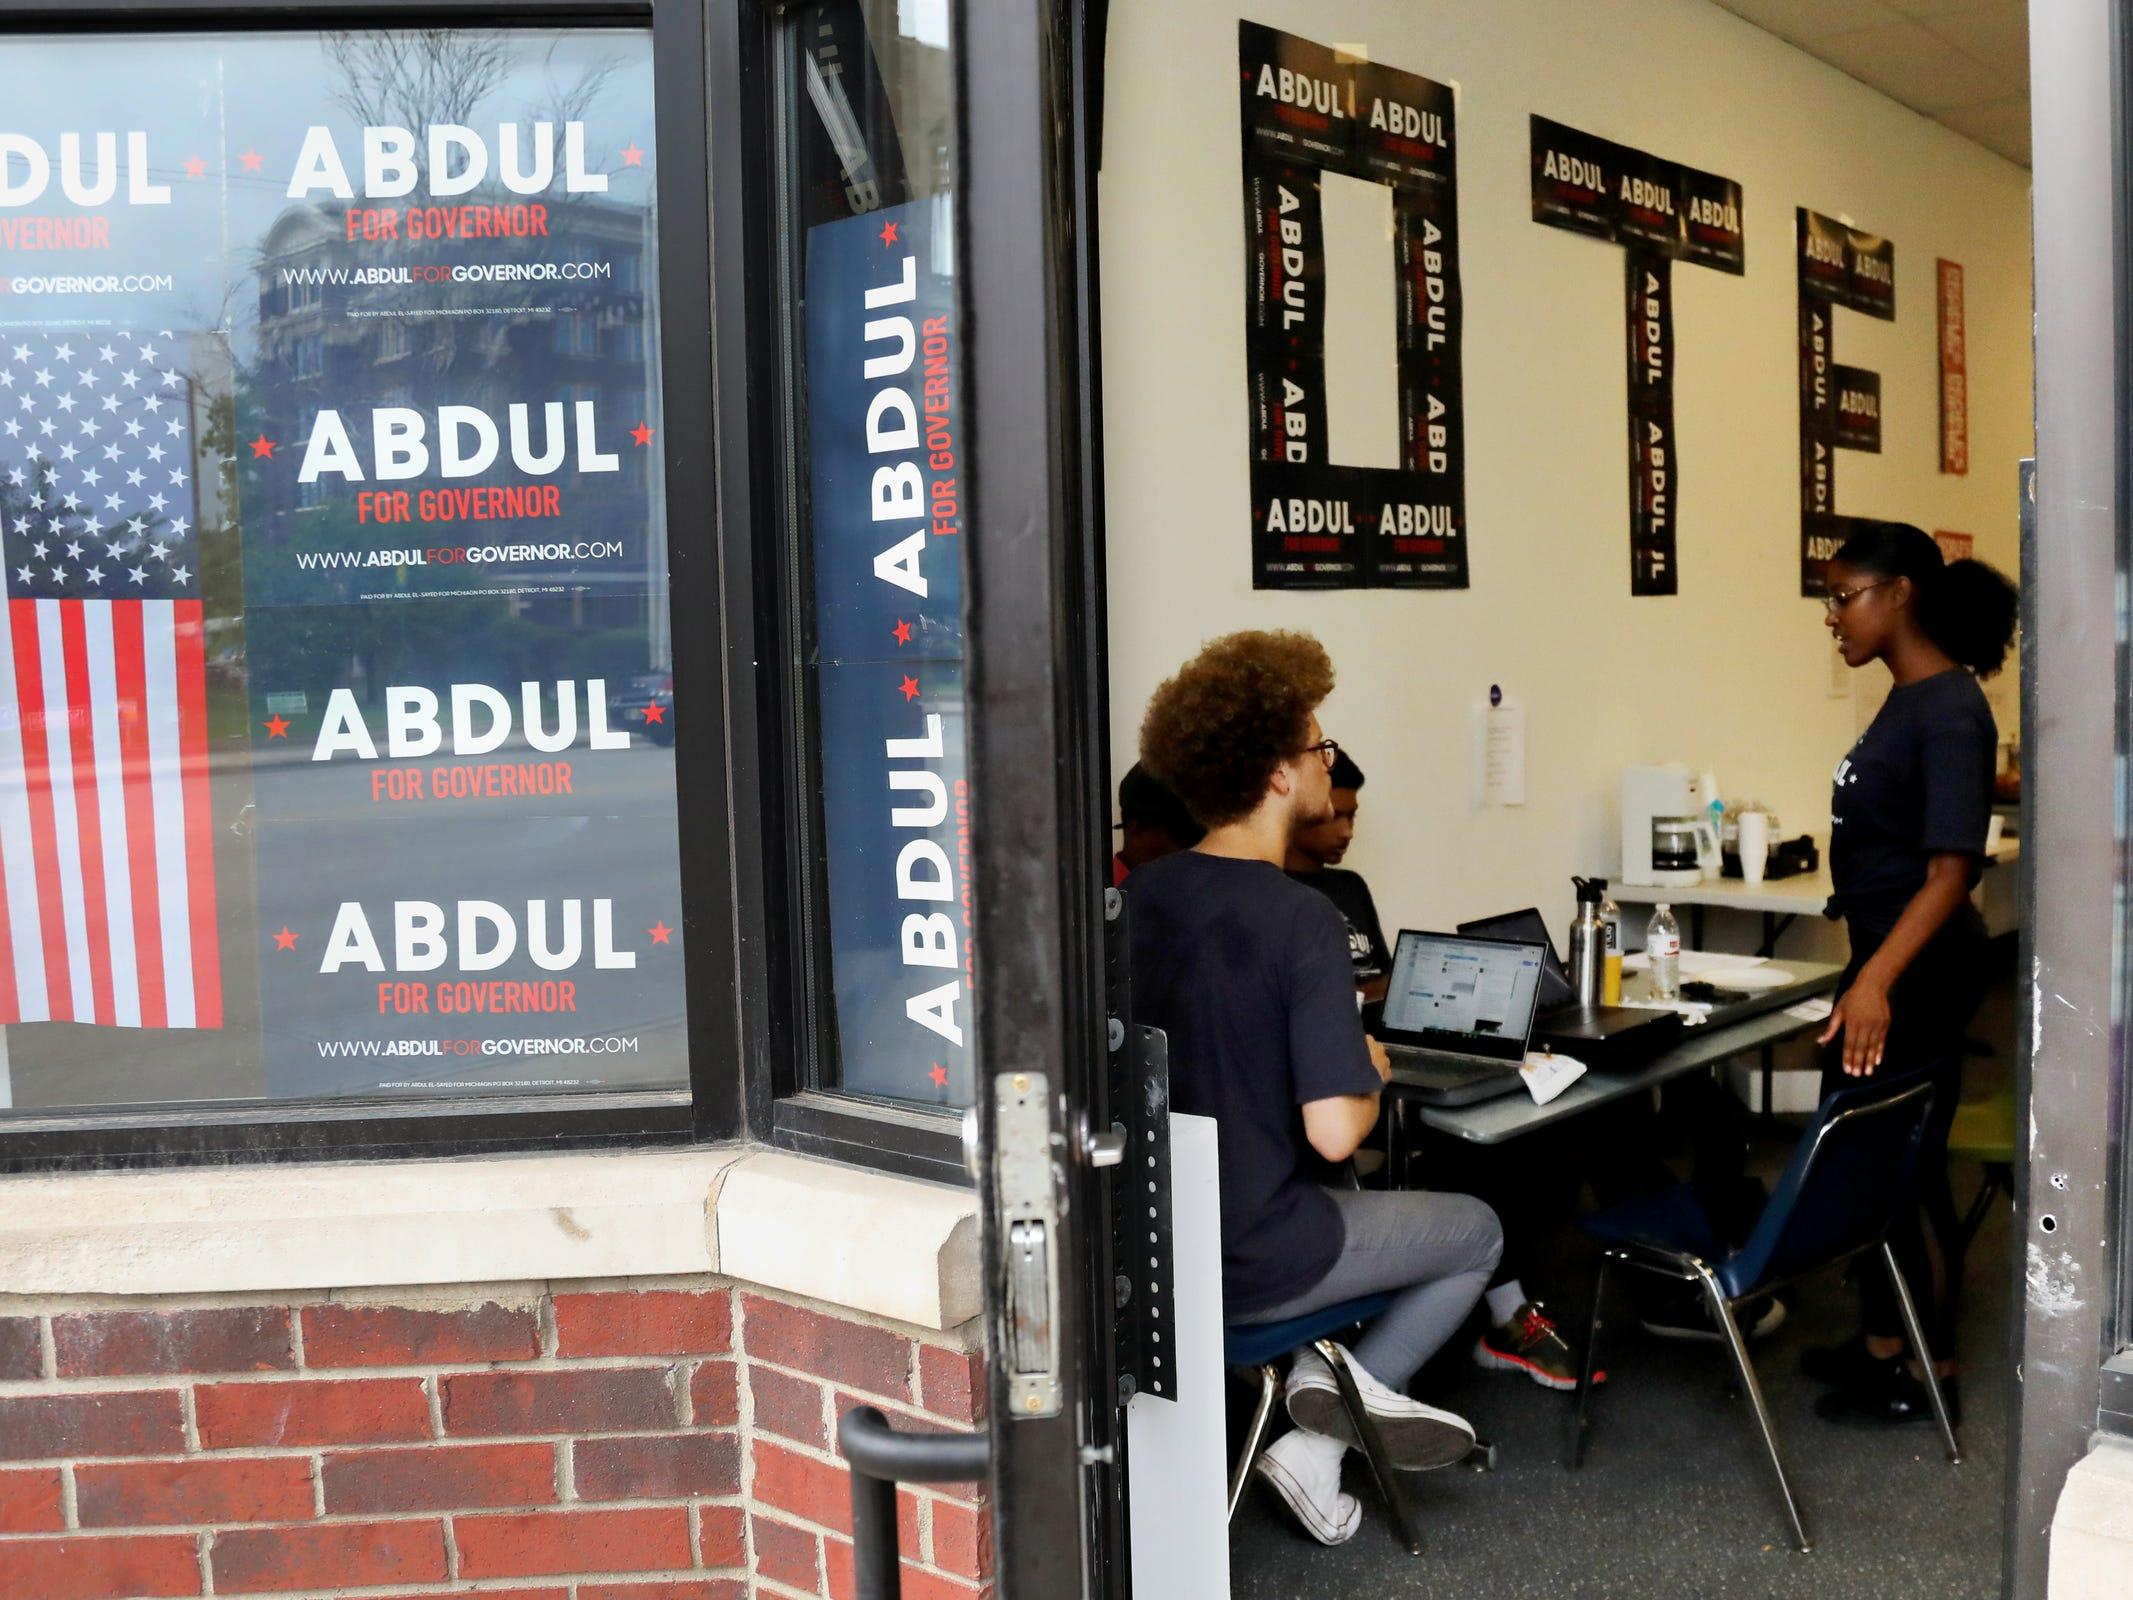 Camille Johnson, lead Detroit organizer, talks with other organizers at the campaign headquarters for Dr. Abdul El-Sayed in Detroit on Tuesday, Aug. 7, 2018.